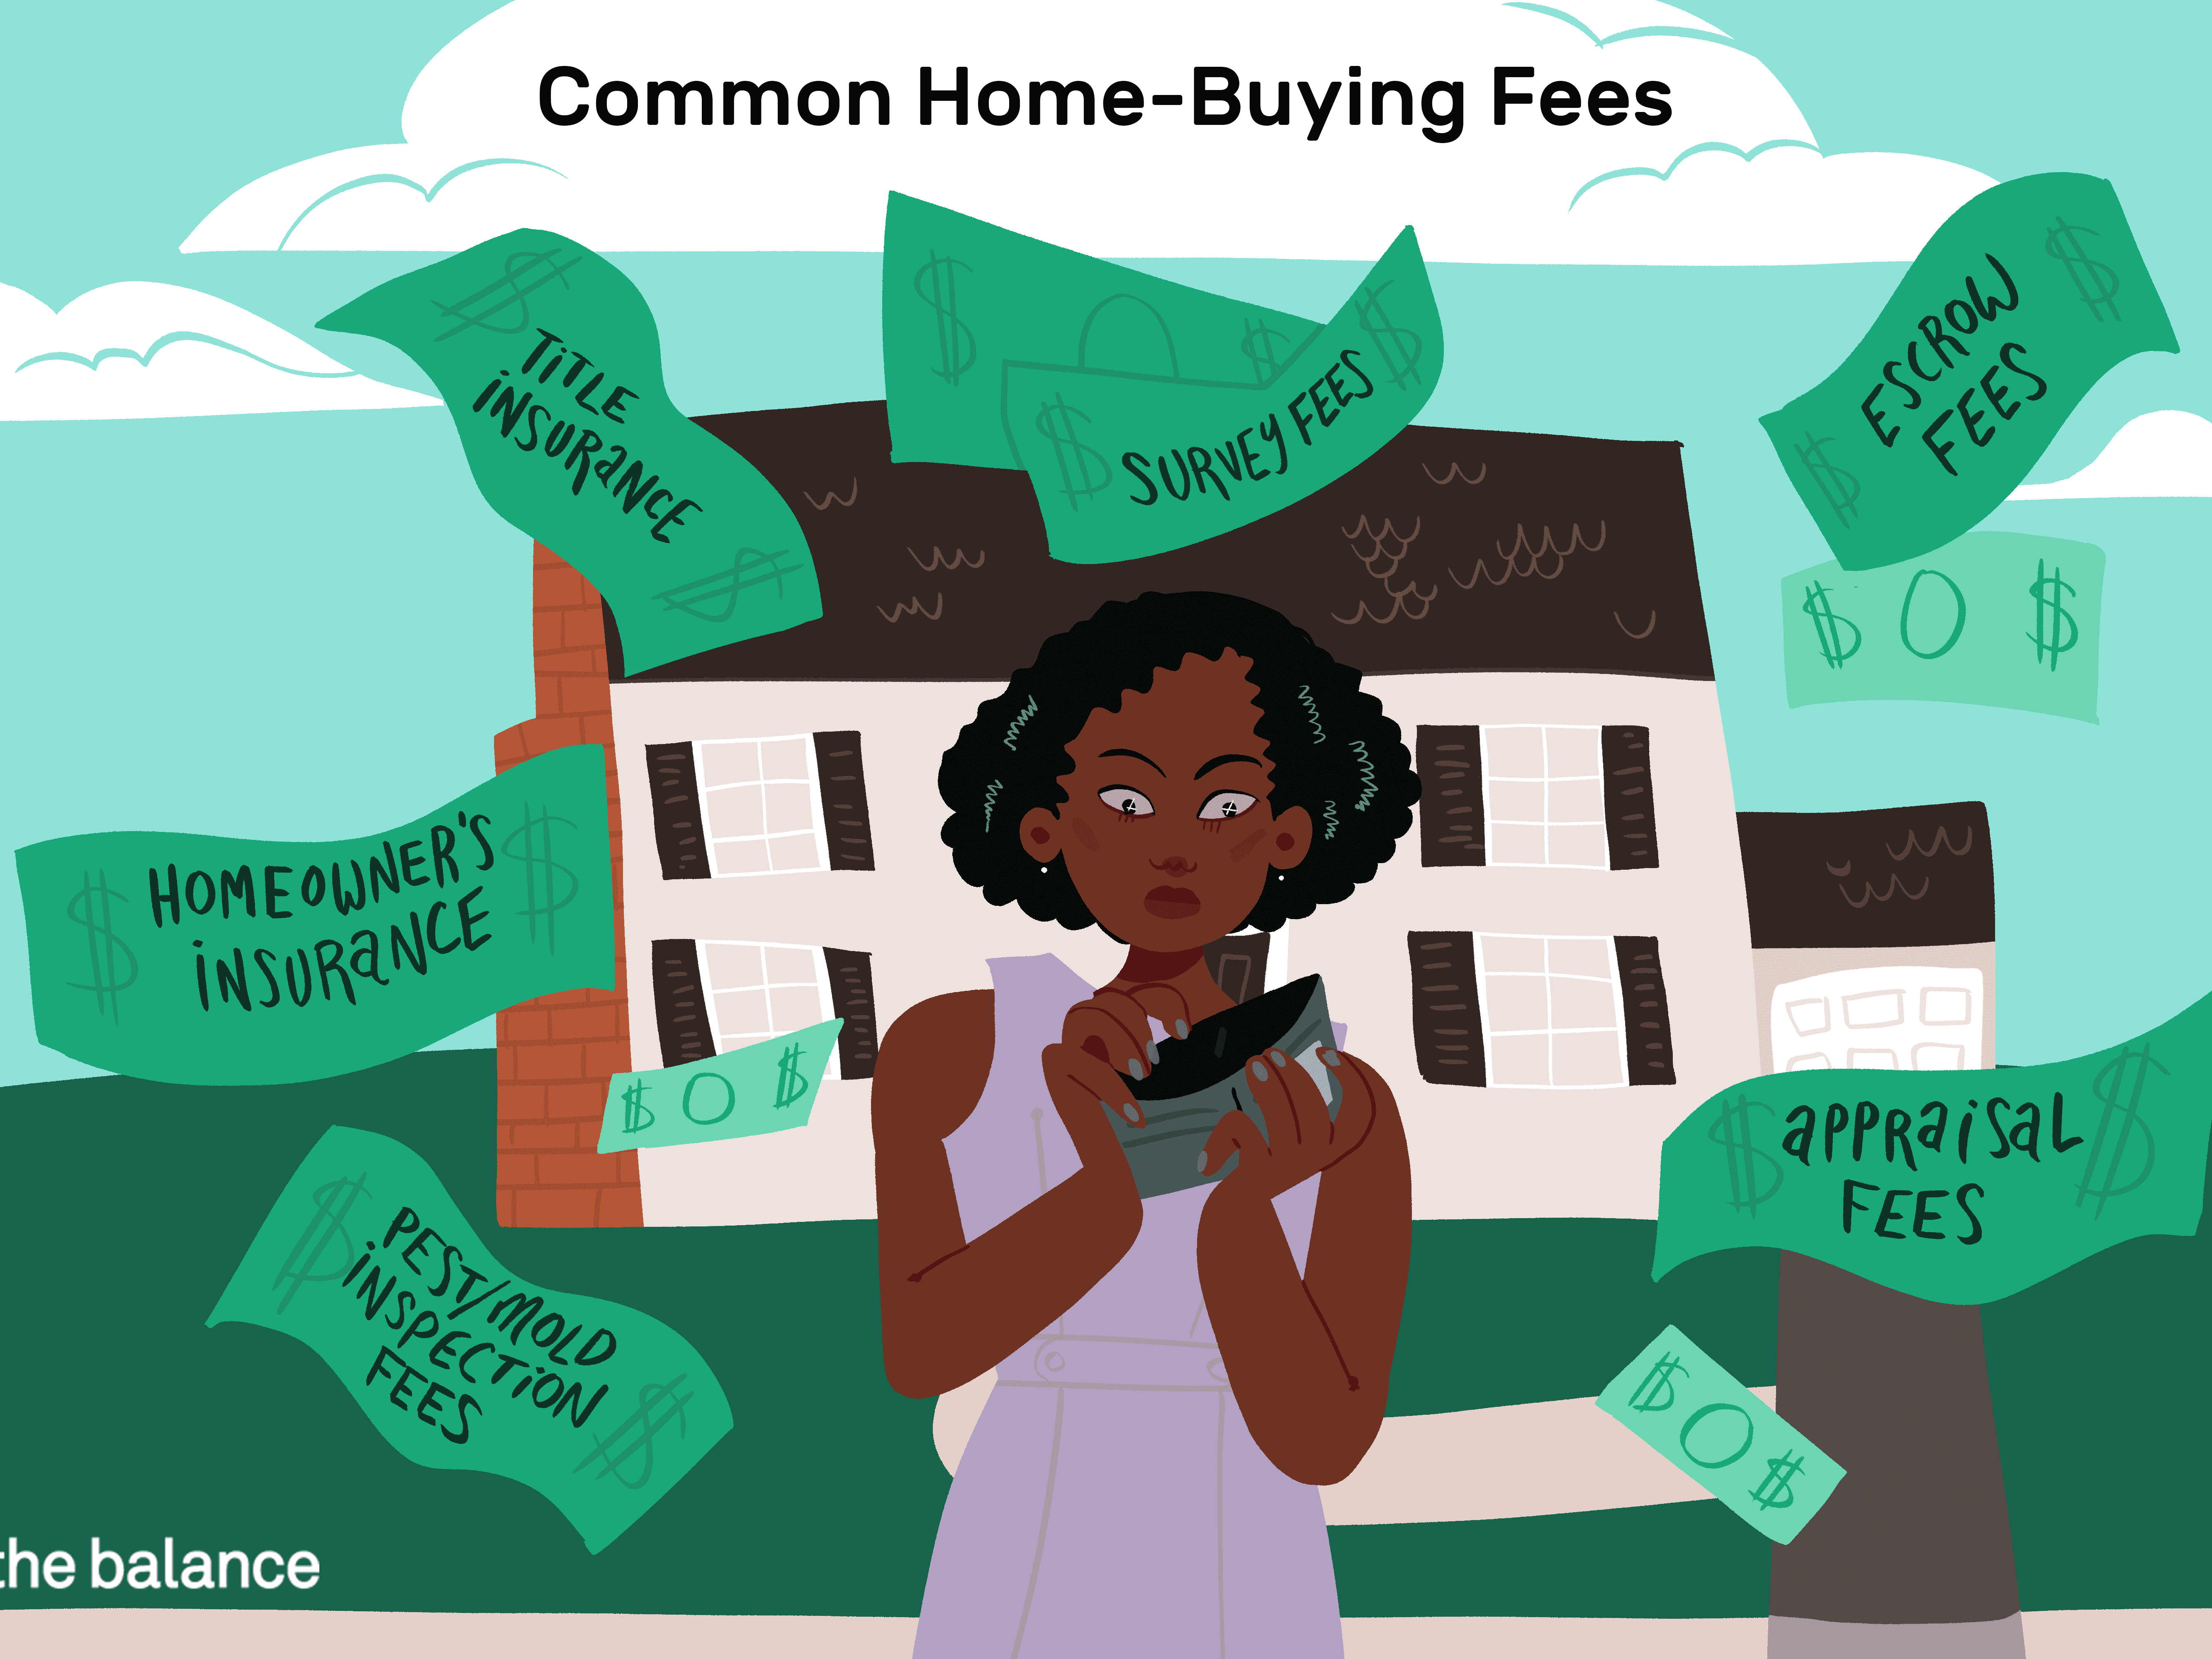 Fees You Need To Know About Before Buying a Home